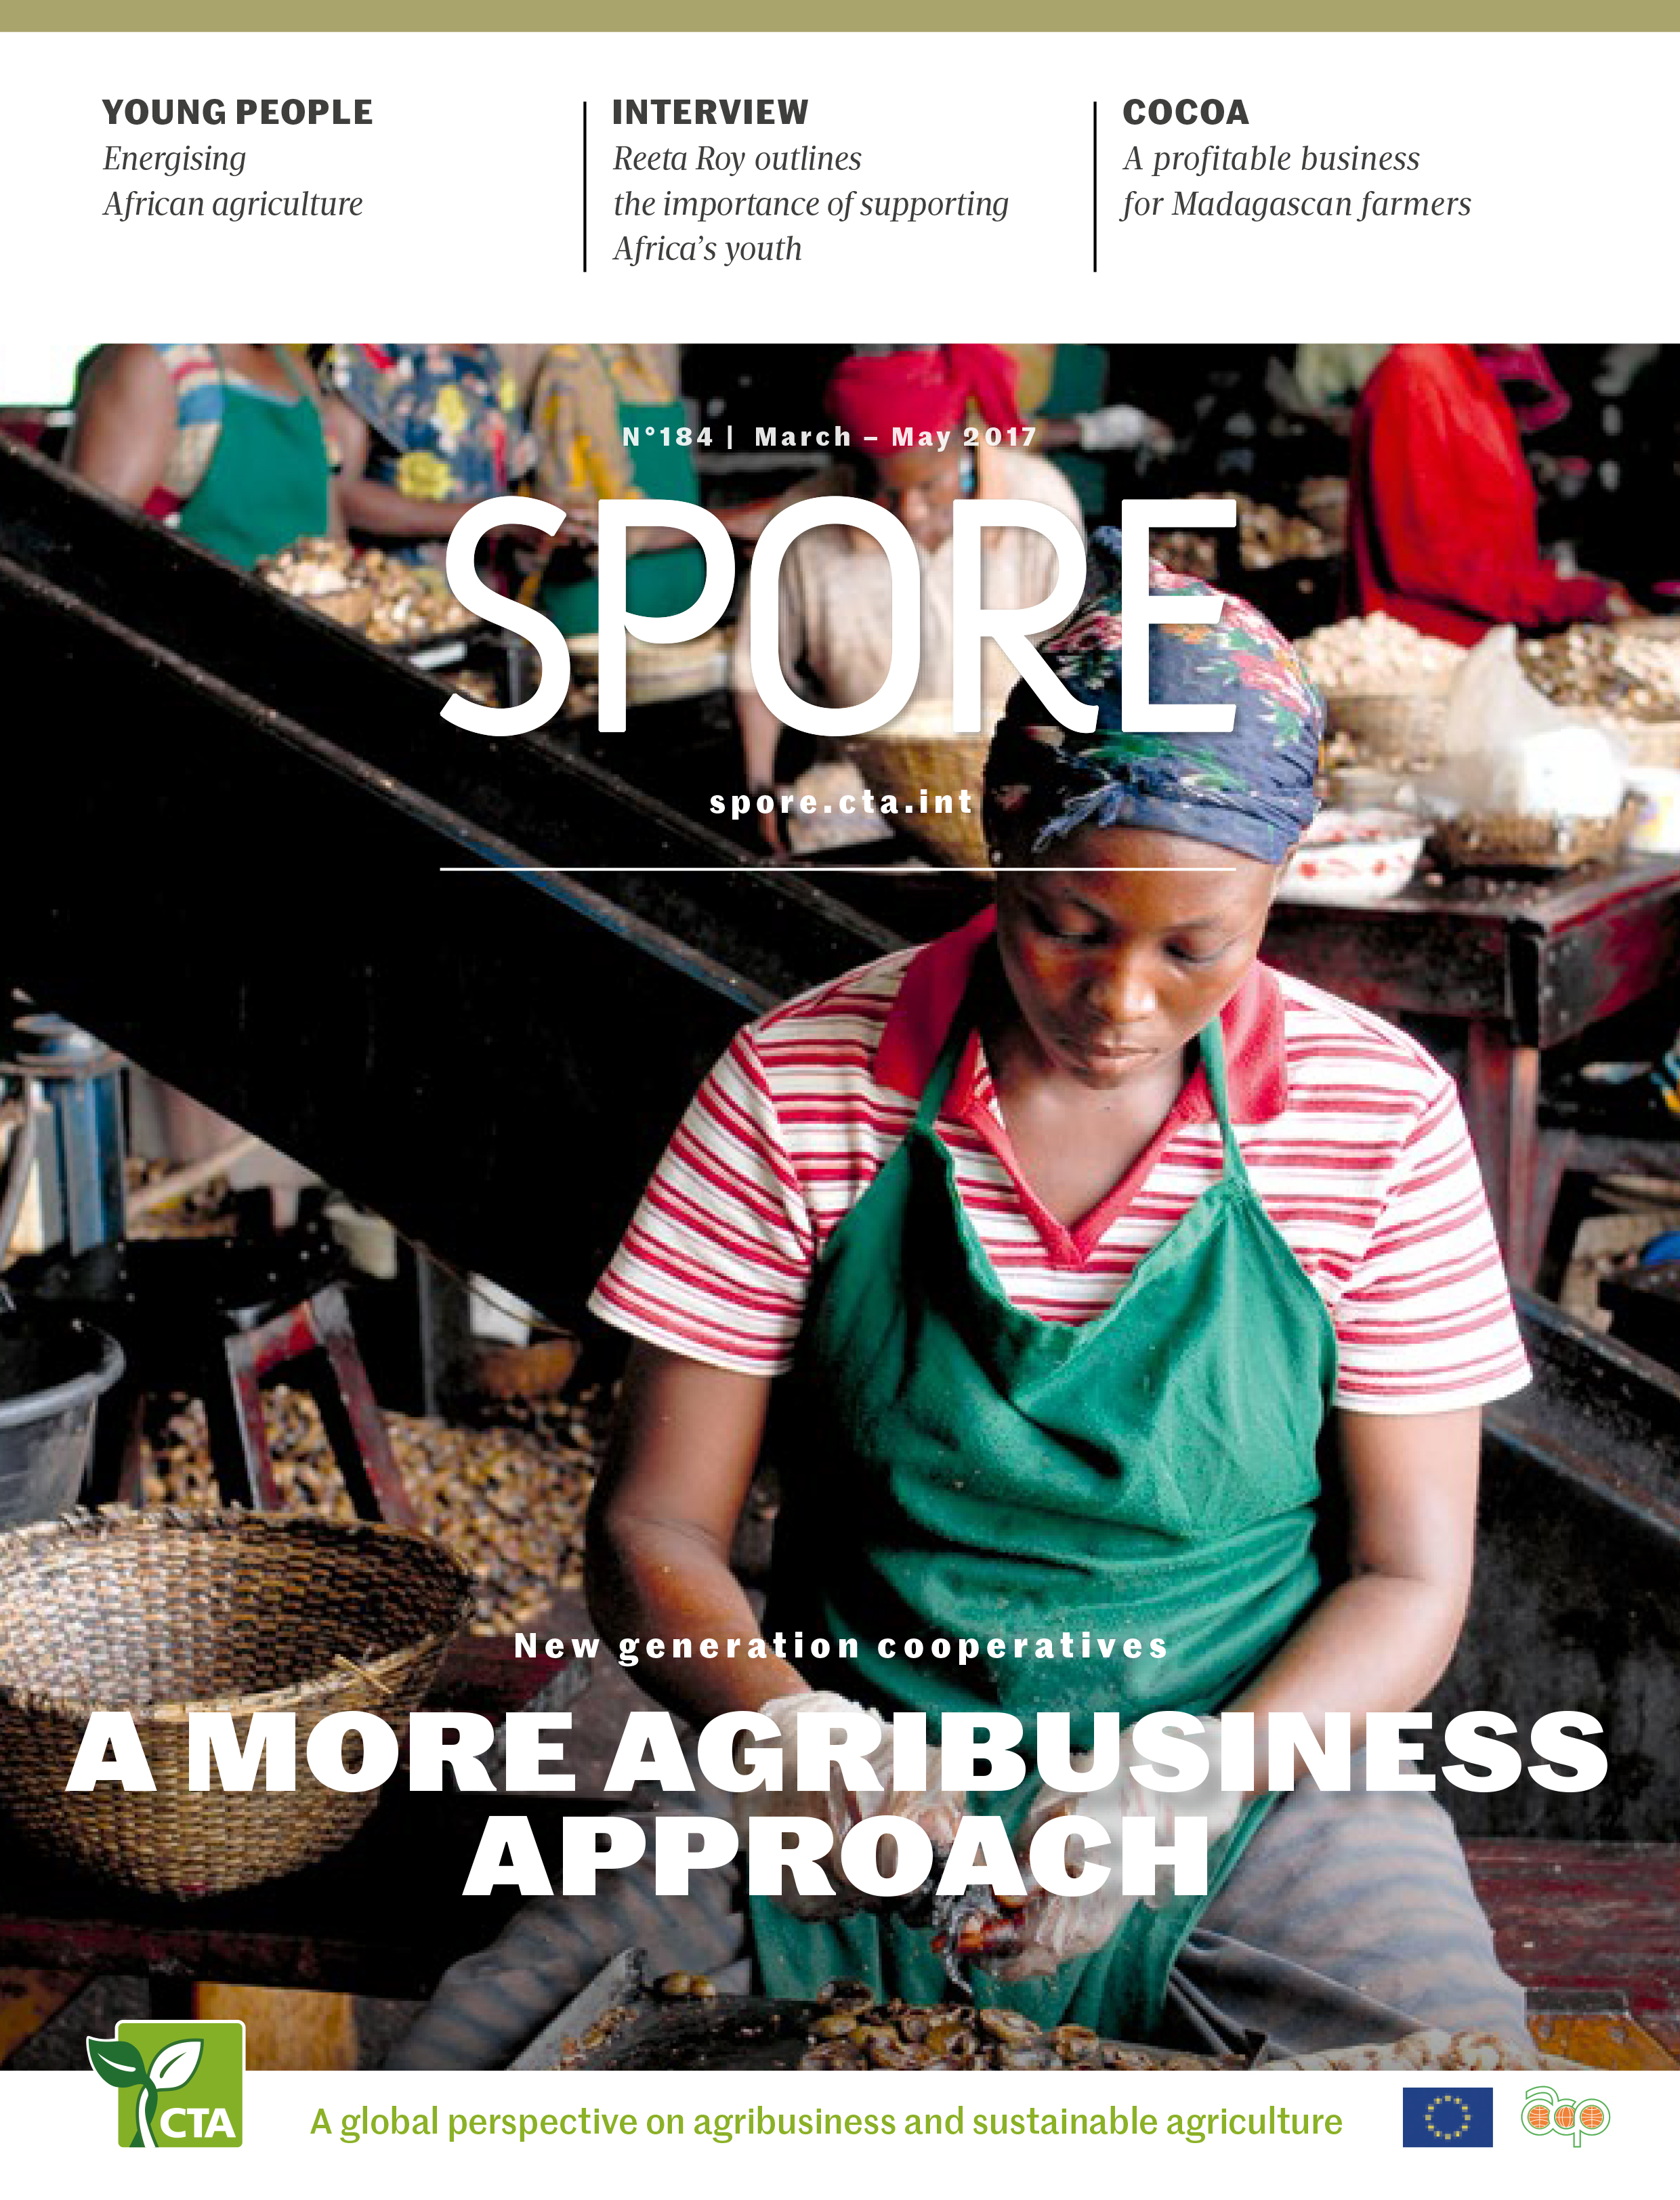 New generation cooperatives: A more agribusiness approach